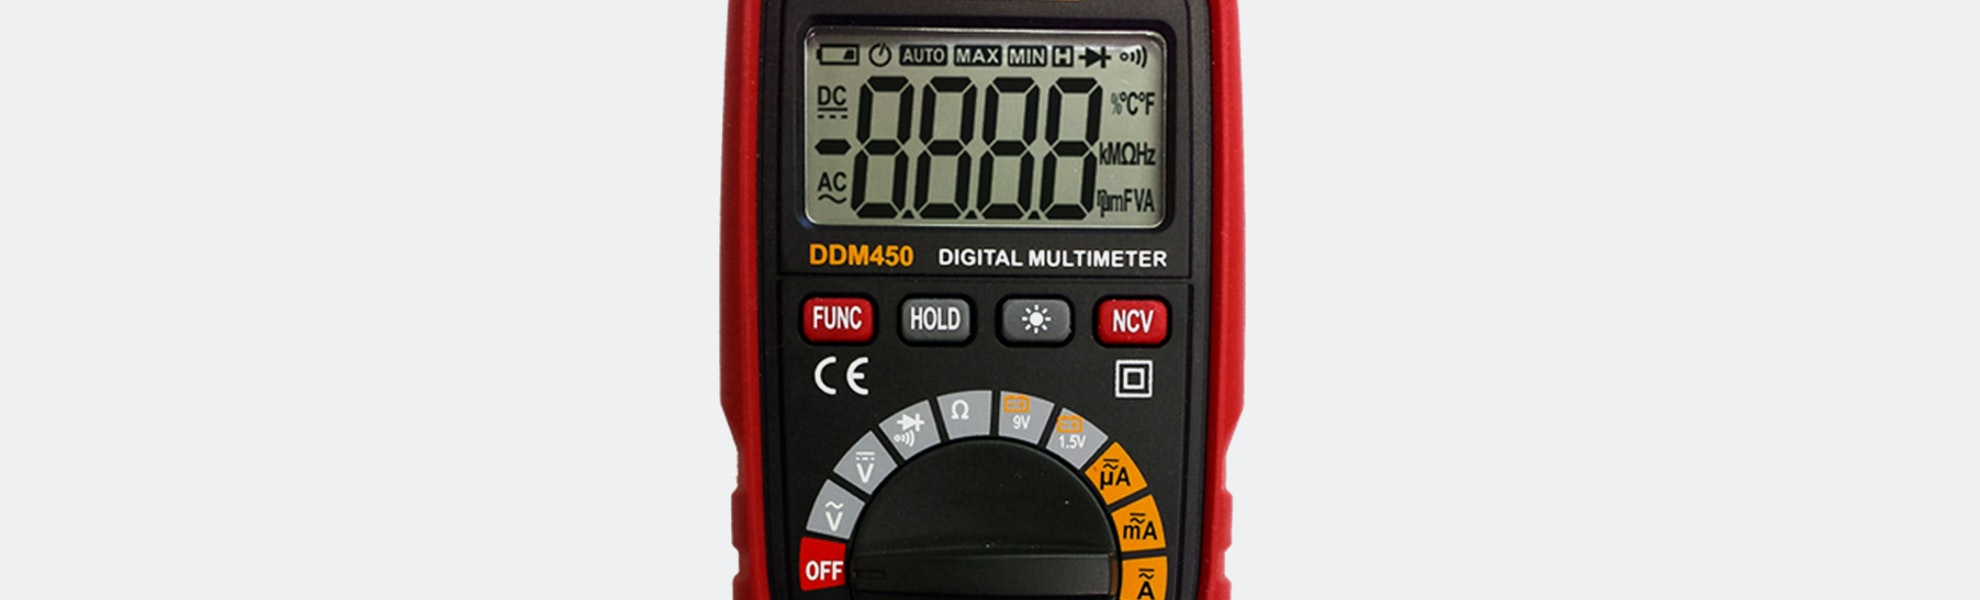 Dawson DDM450 & 453 Auto-Range Digital Multimeters